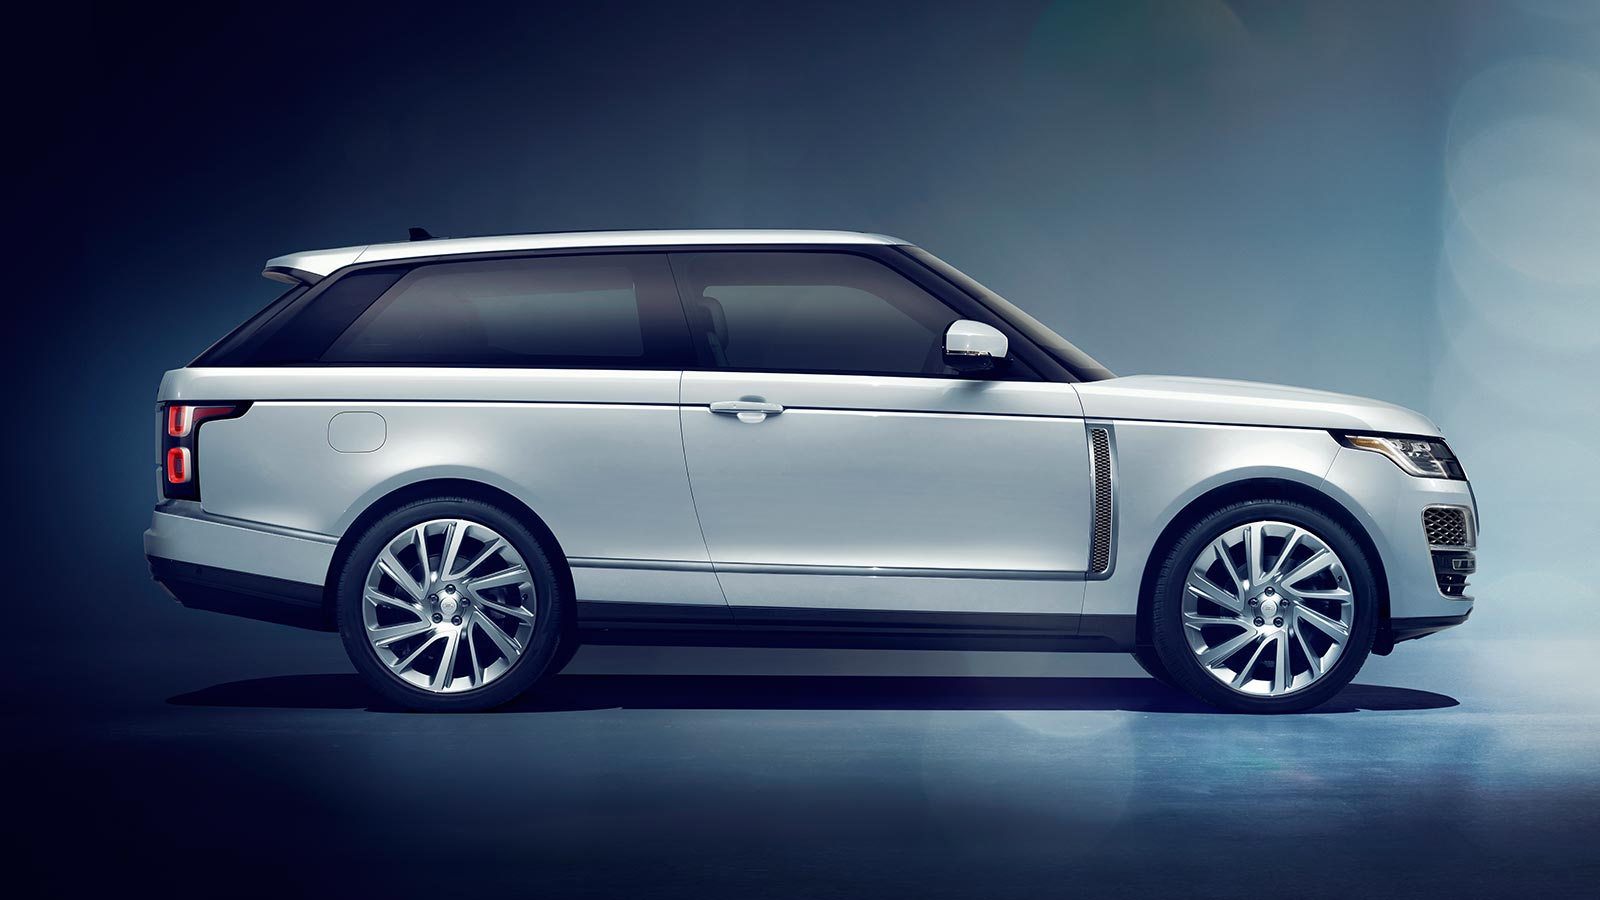 The Range Rover SV Coupe in Valloire White with 23 inch two tone wheels side profile